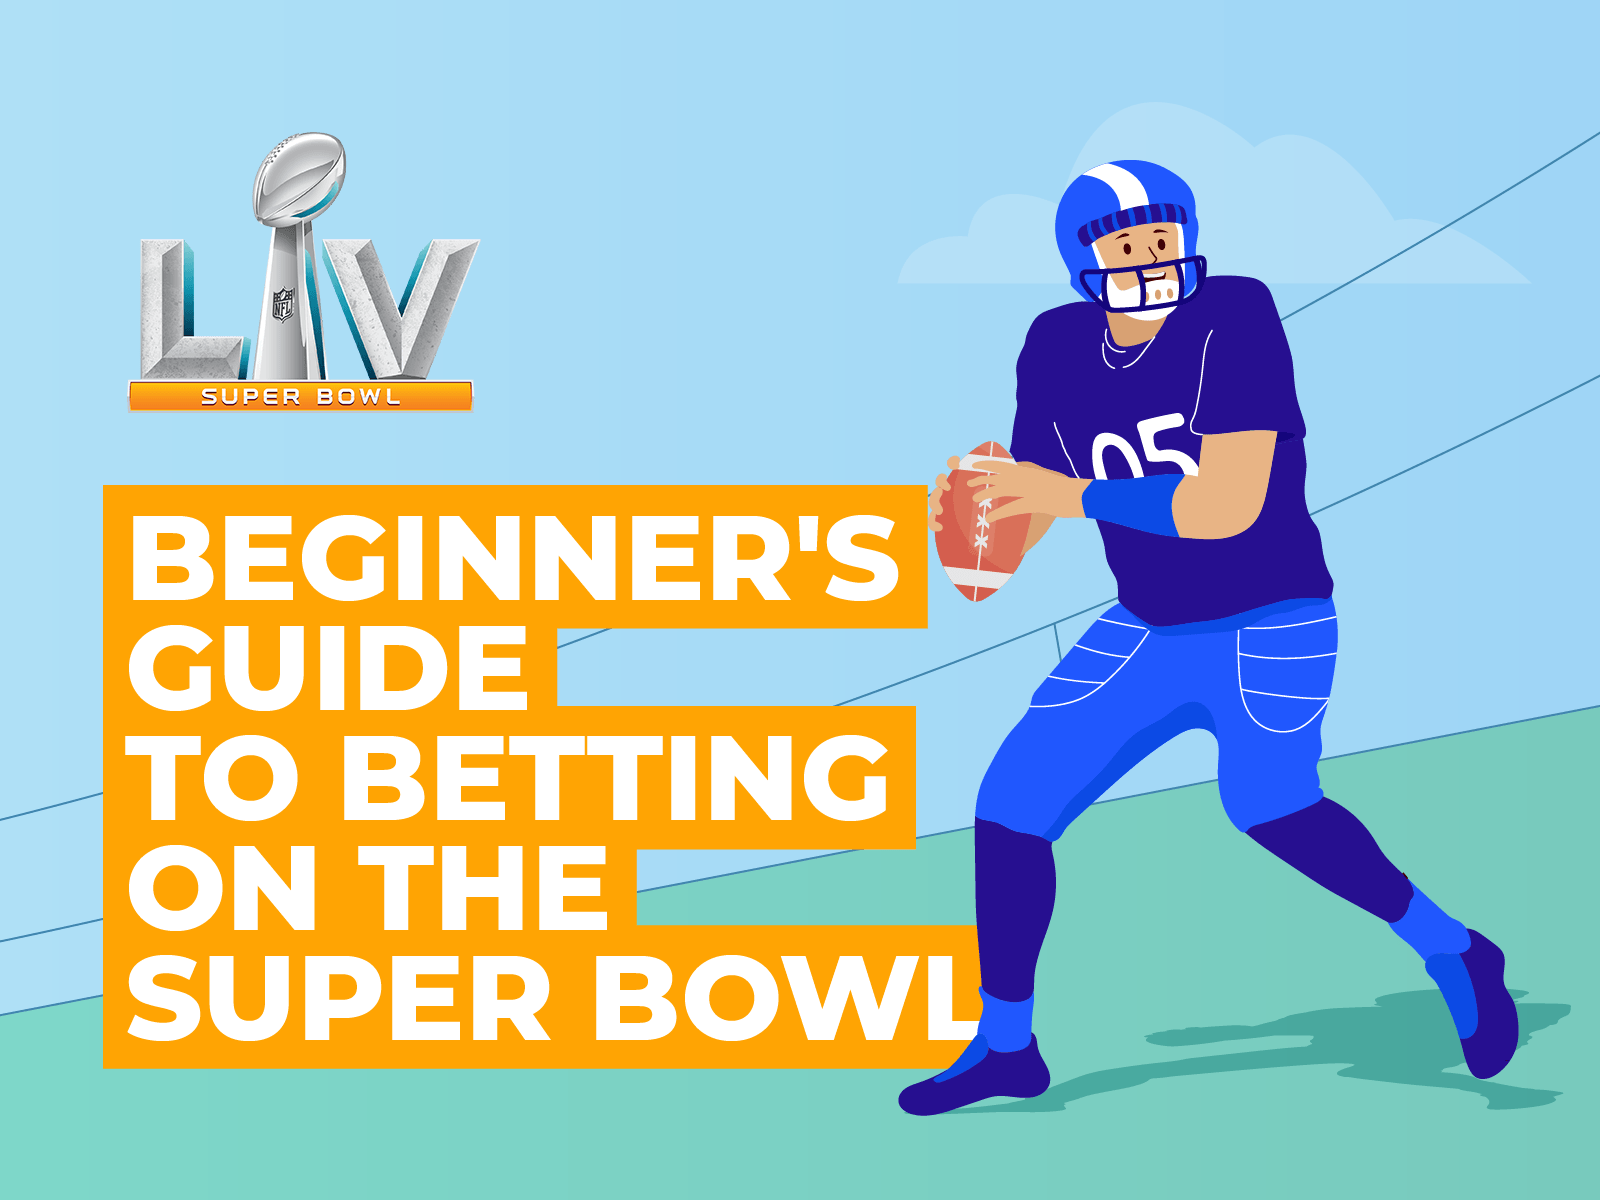 Beginner's Guide To Betting On The Super Bowl